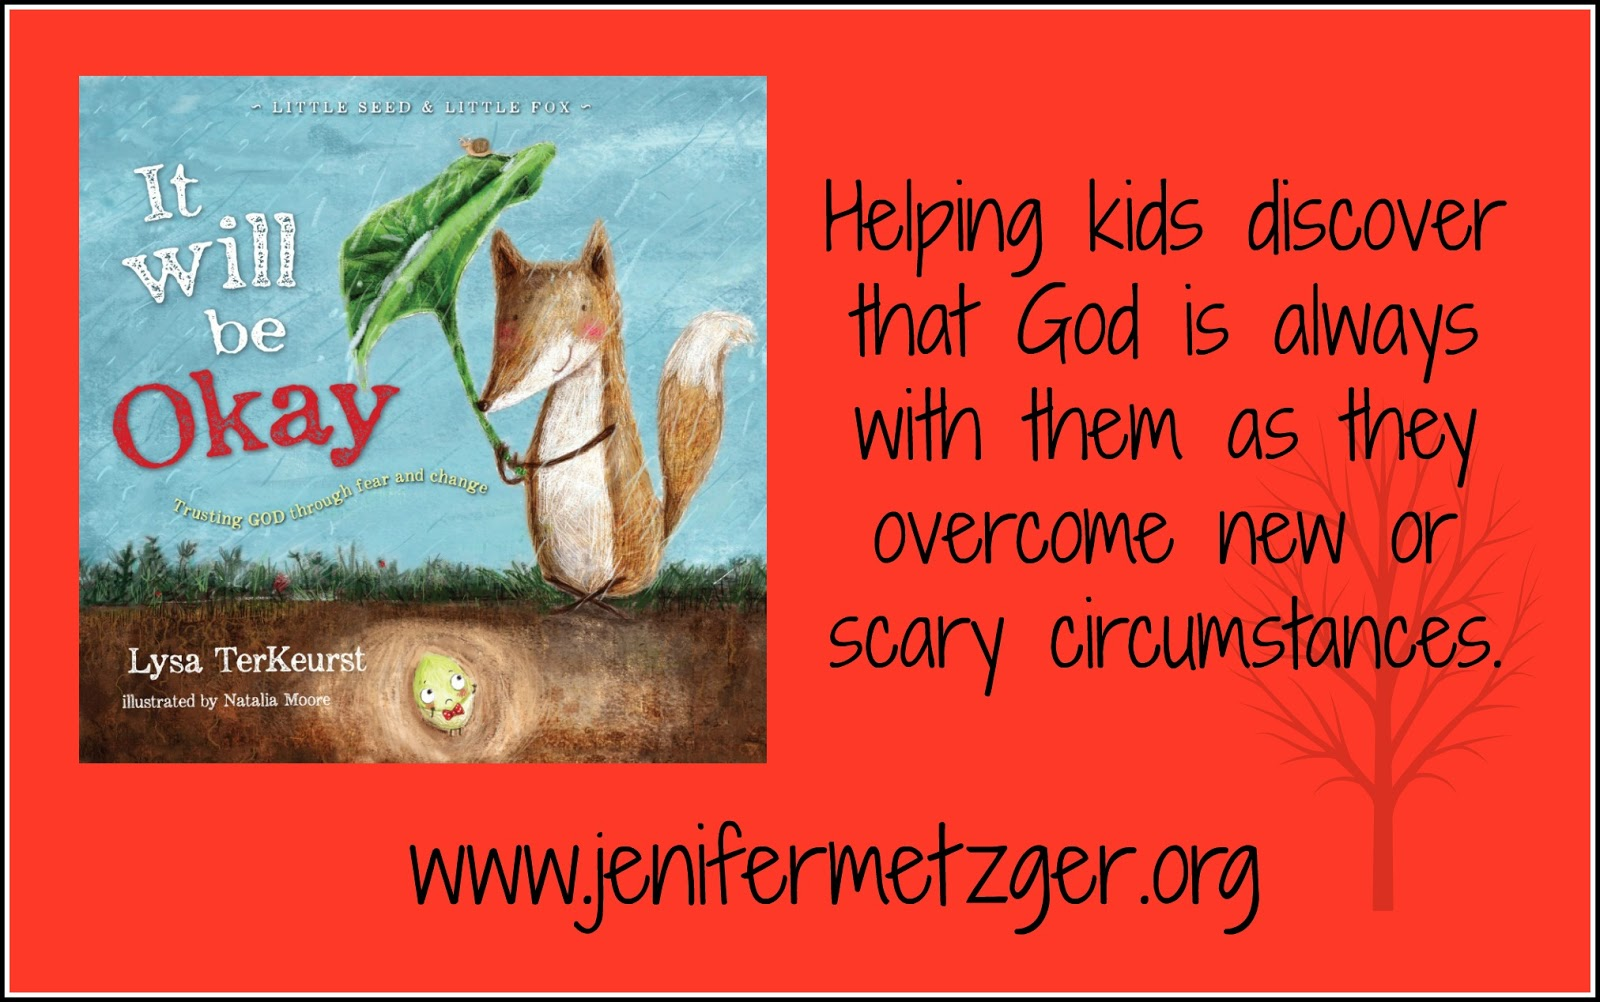 Helping kids discover that God is always with them as they overcome new or scary circumstances. #parenting #fear #worry #scary